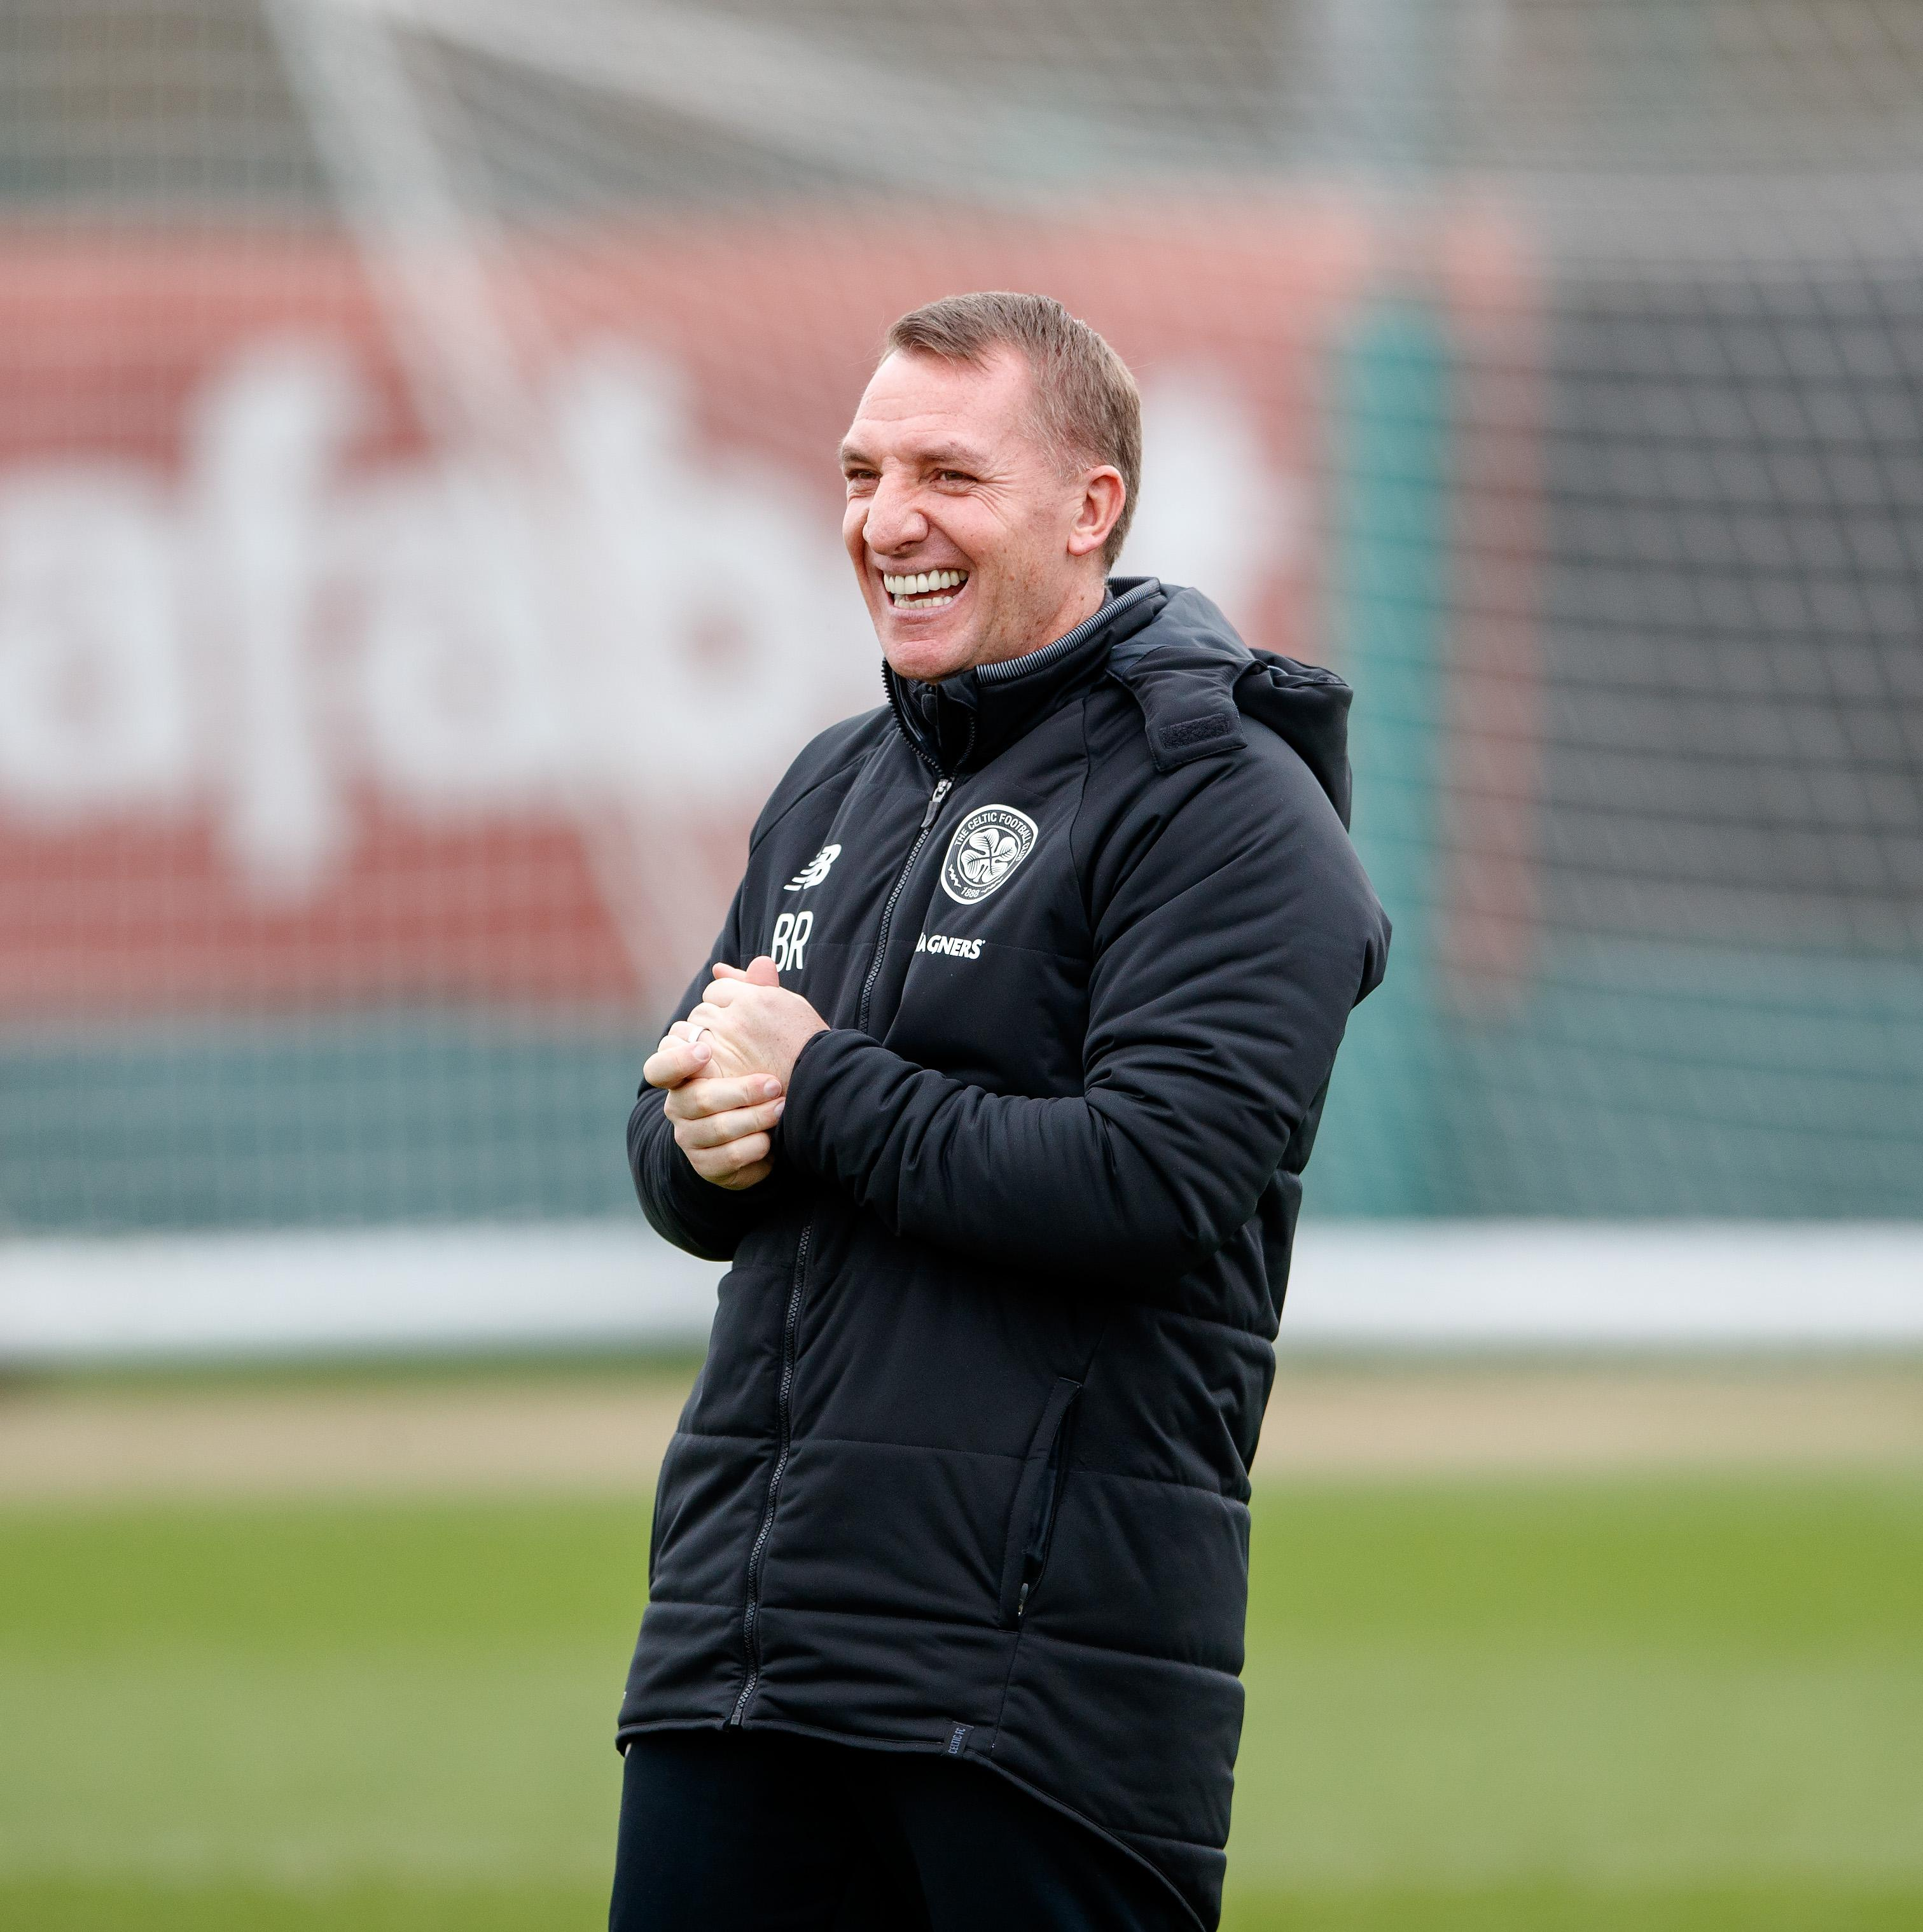 Brendan Rodgers wants the Arsenal job and has been given permission by Celtic to speak to the club